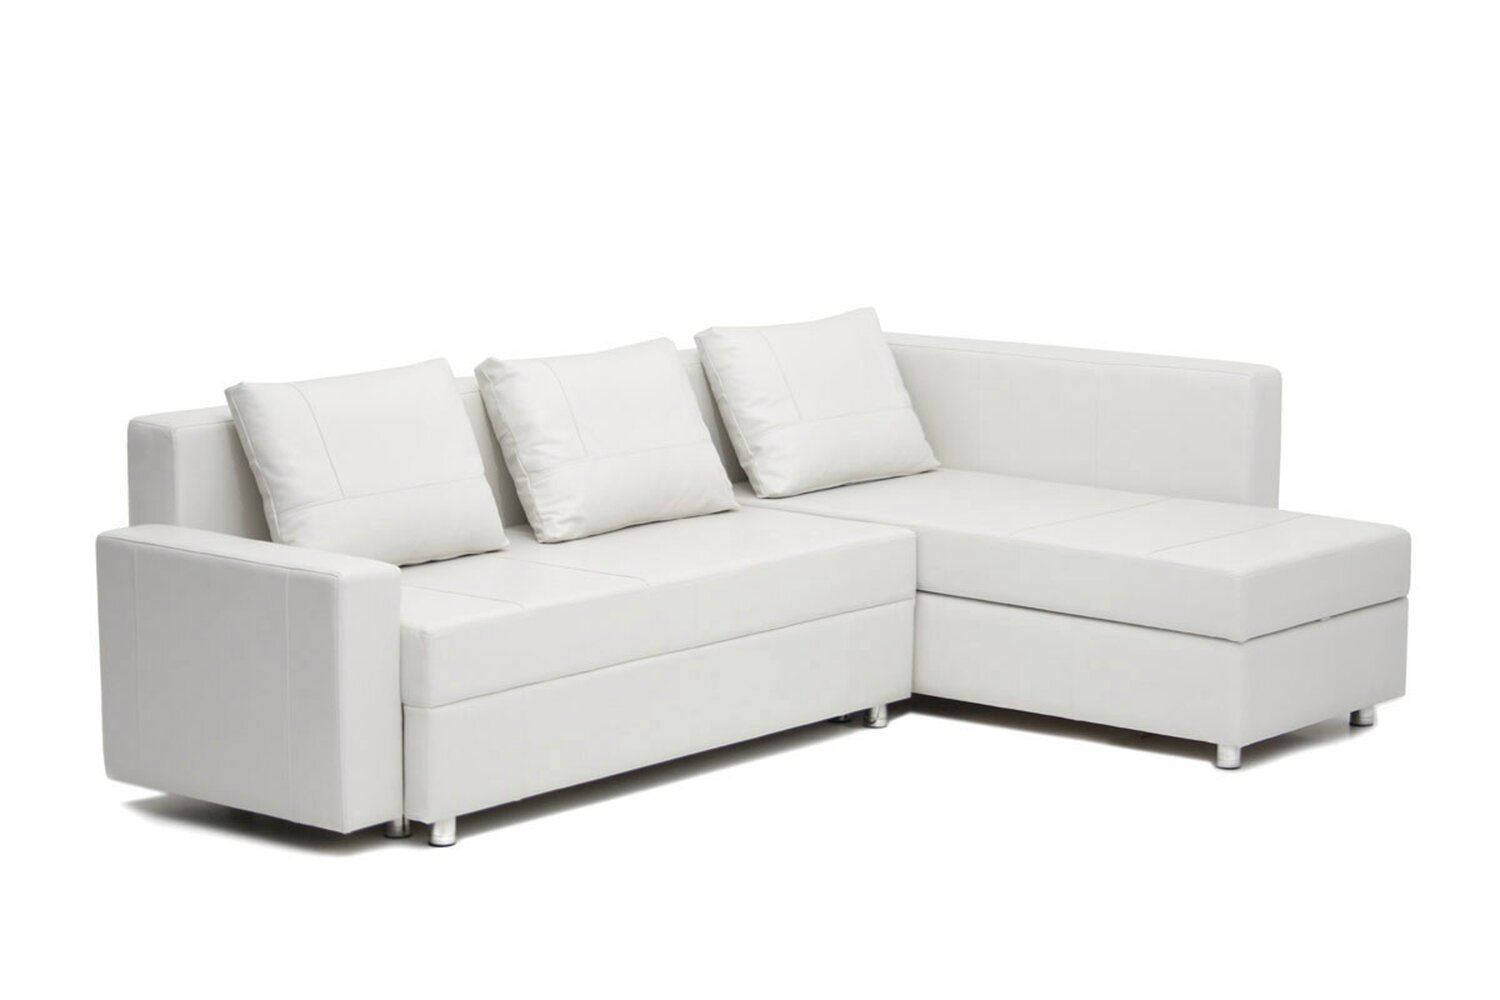 Bettsofa Dx2770 1790 00 Chf